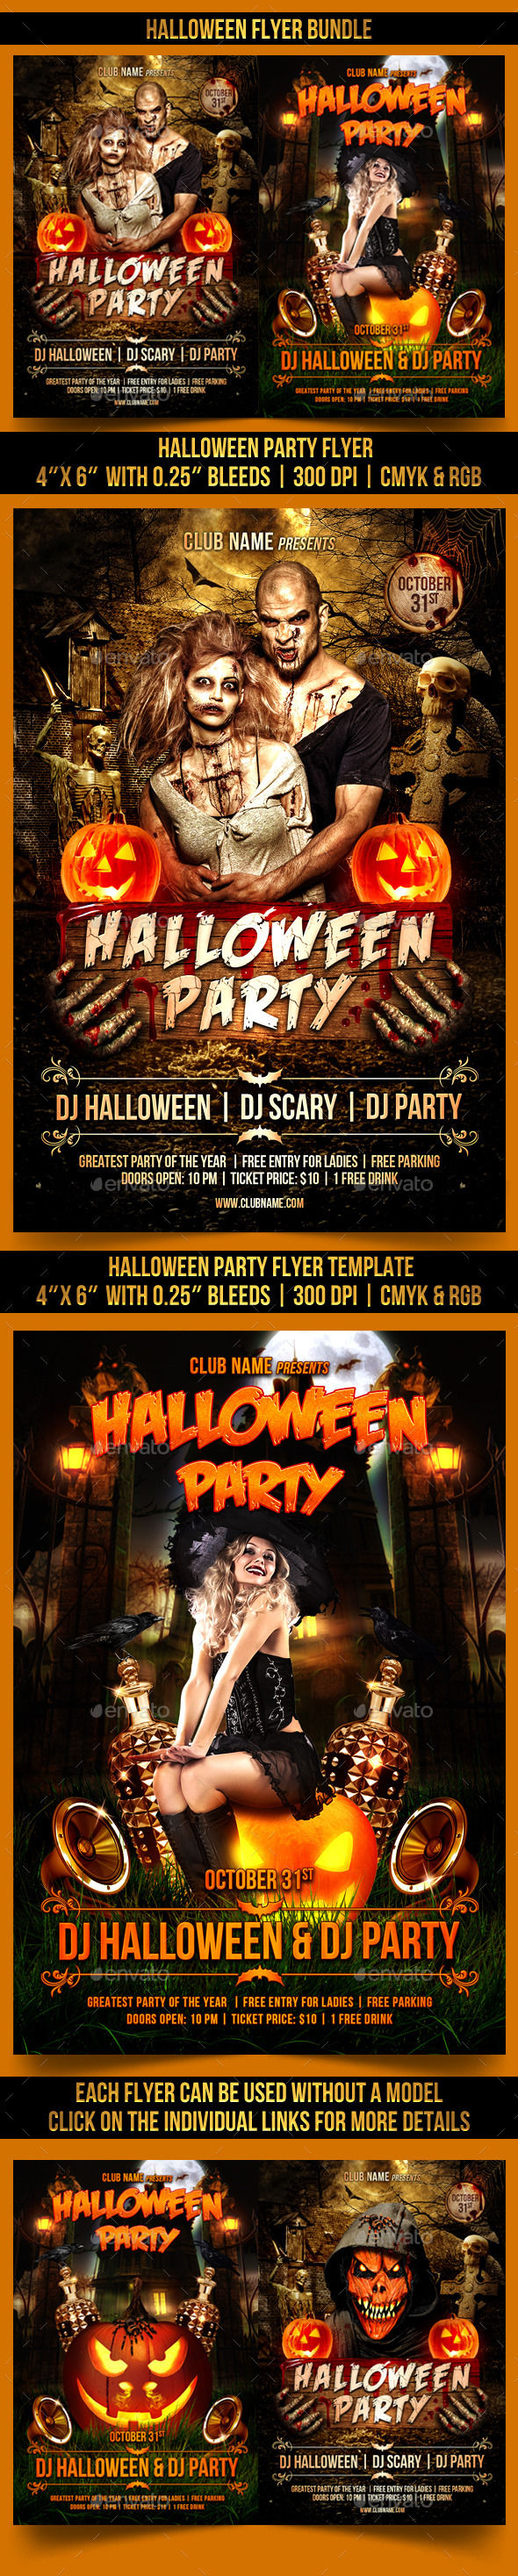 Halloween Flyer Bundle by Gugulanul (Halloween party flyer)